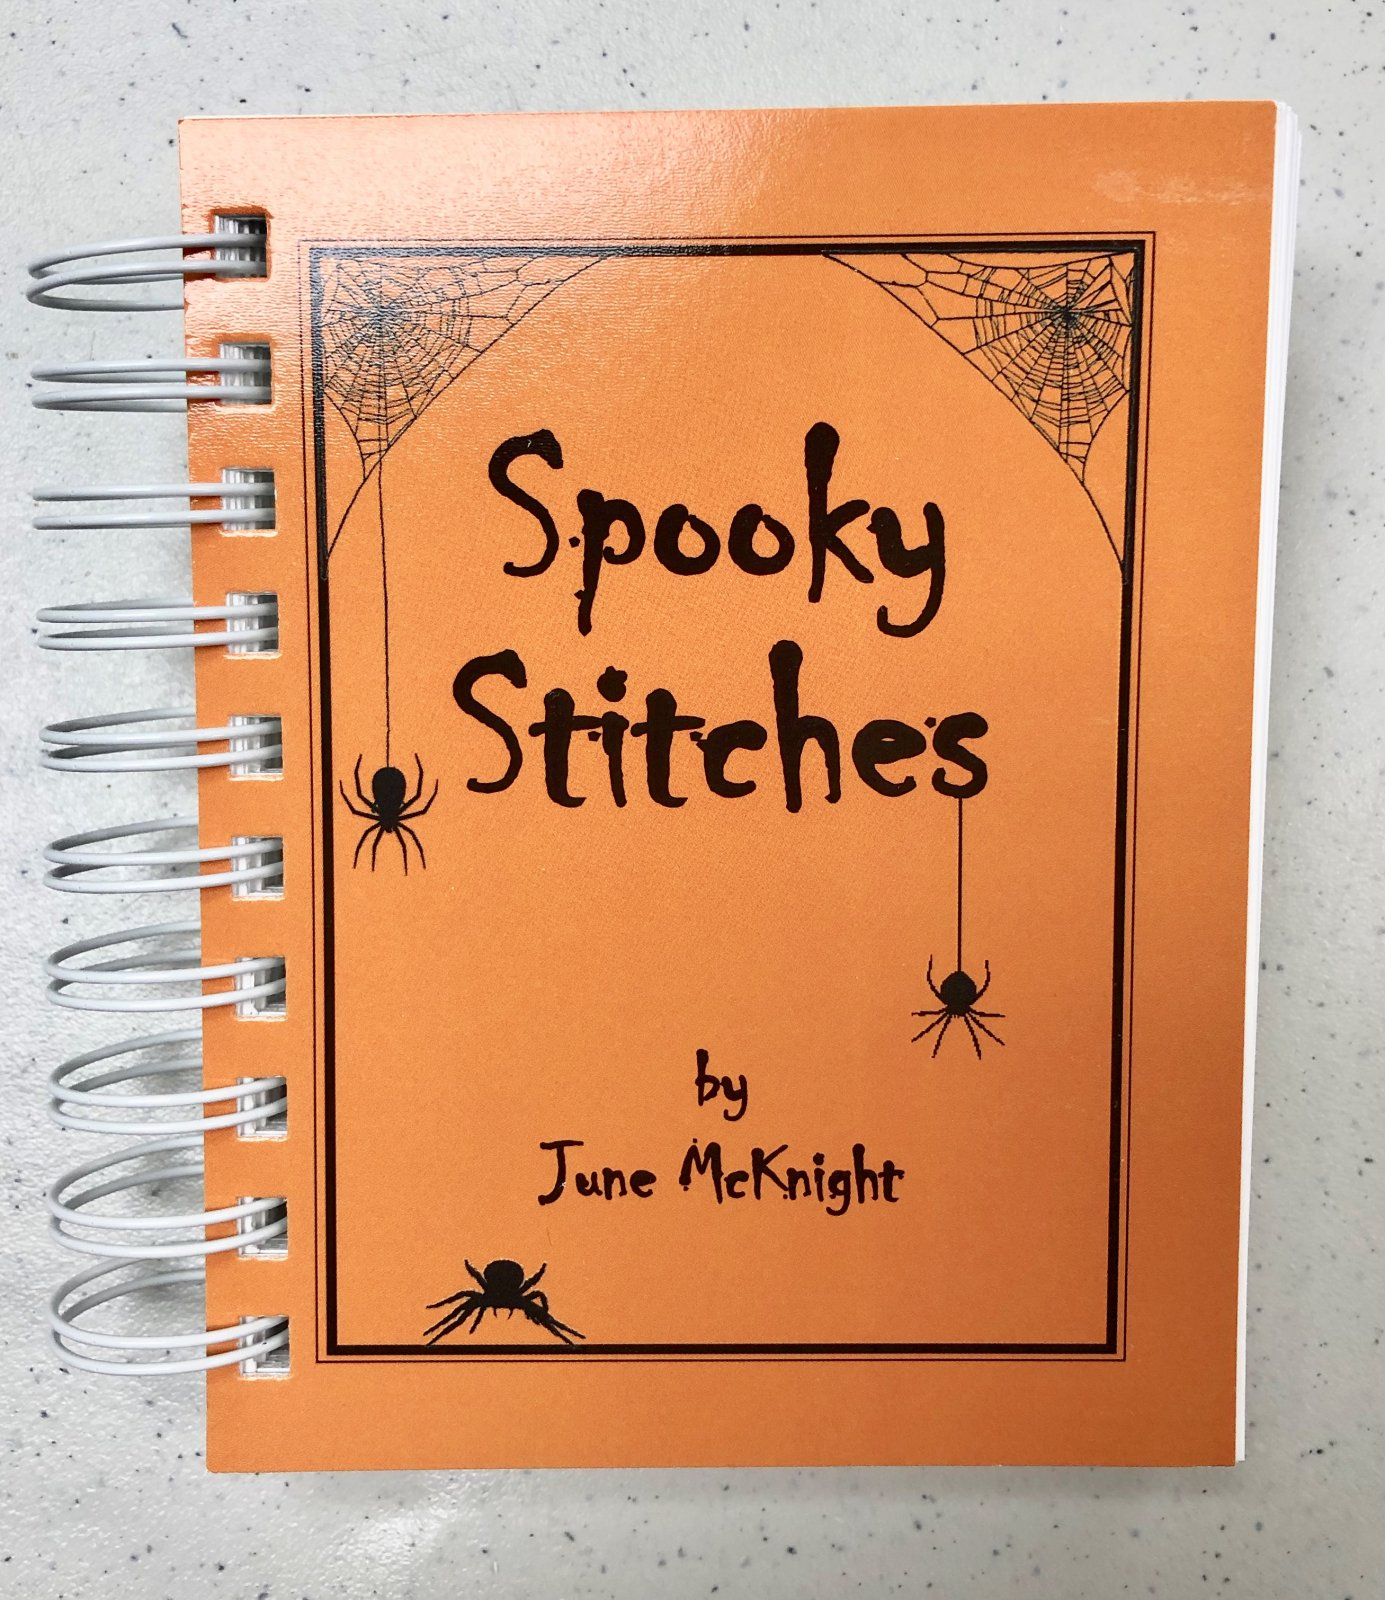 spooky stitches